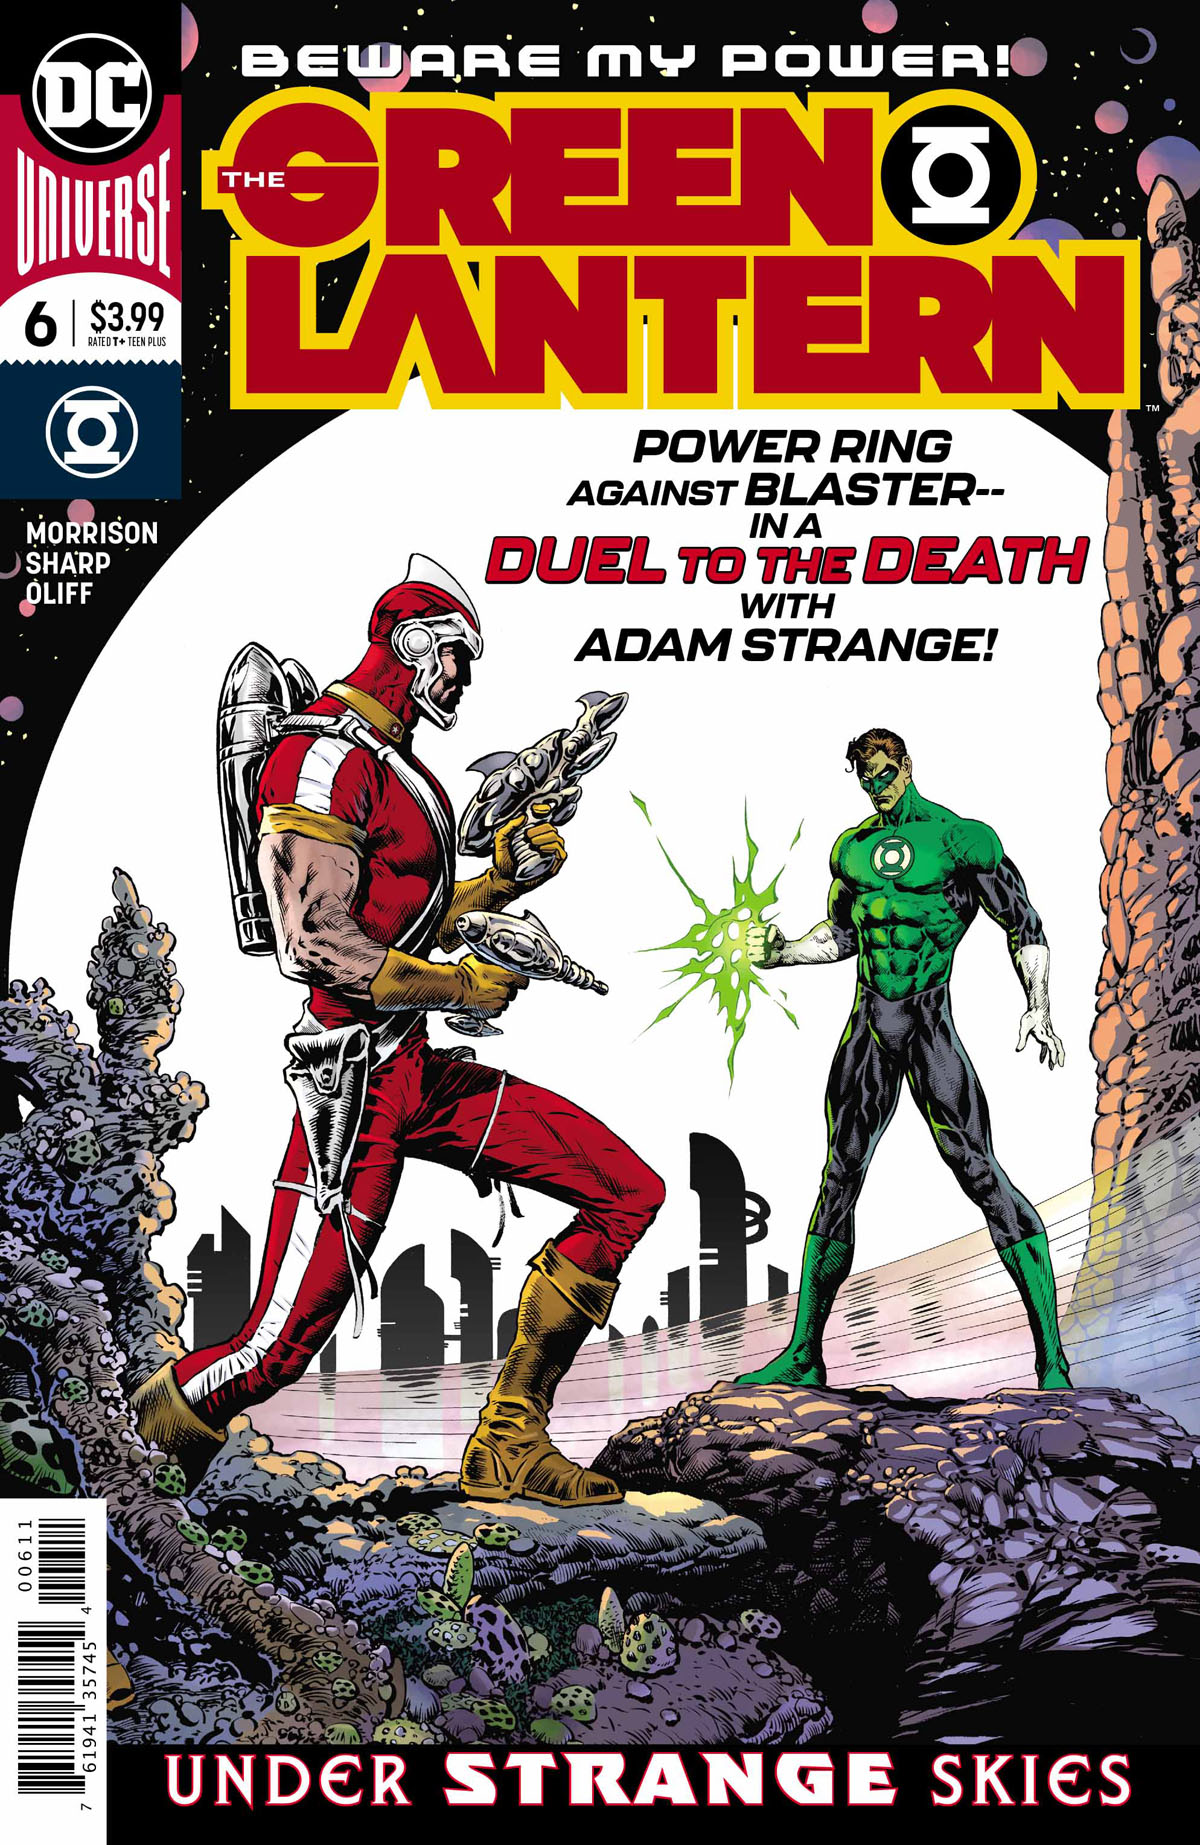 The Green Lantern #6 cover